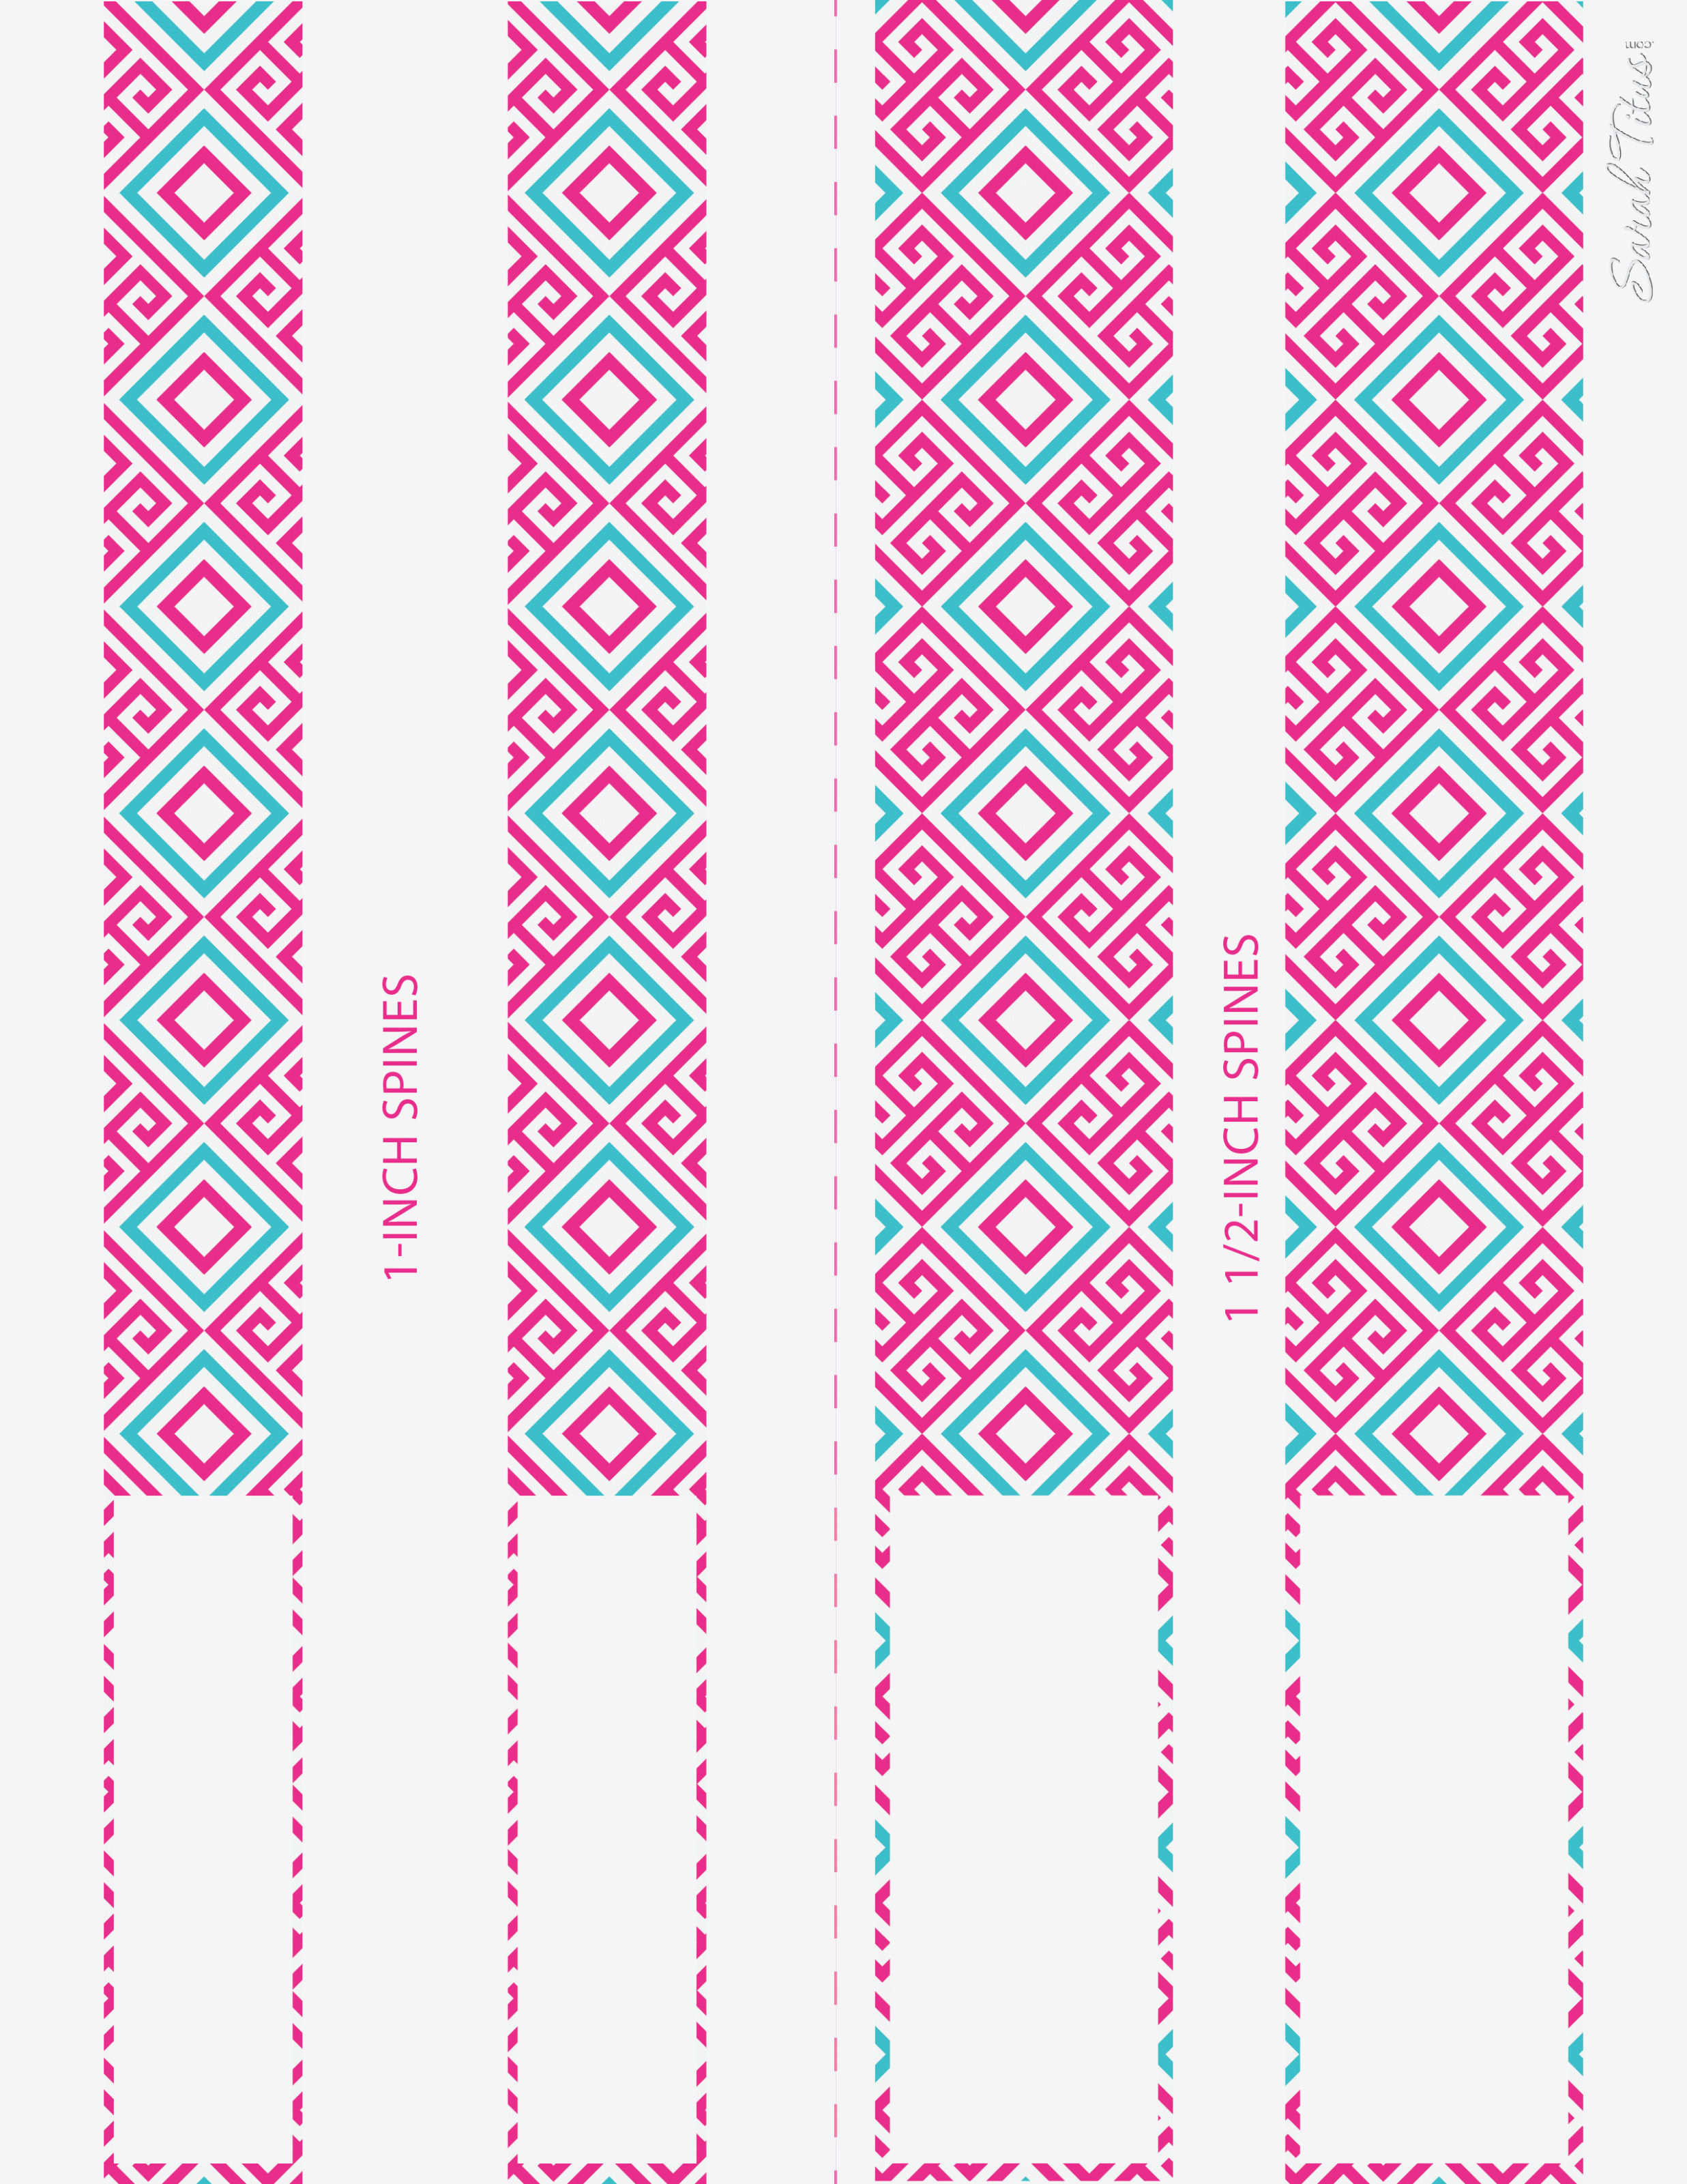 Printable Binder Covers And Spines – Free Printable Spine Labels For - Free Printable Binder Covers And Spines